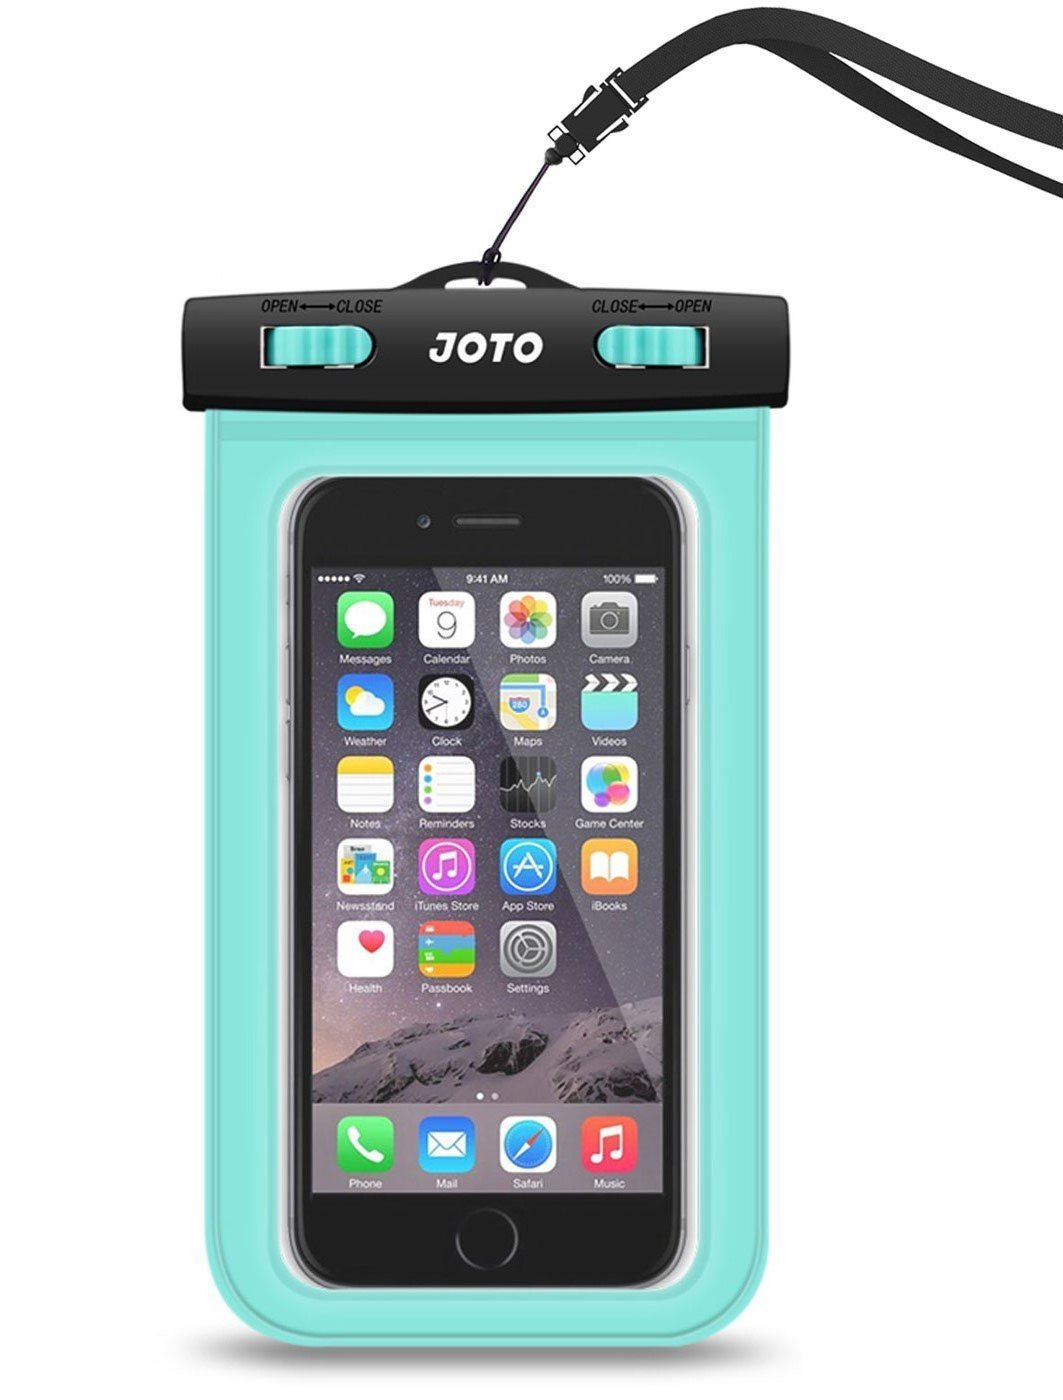 Waterproof Case, JOTO Cellphone Waterproof Dry Bag Pouch Case for Apple iPhone 6S 6,6S Plus, SE 5S 7, Samsung Galaxy S7 S6, Note 5 4, HTC LG Sony Nokia Motorola up to 6.0 diagonal (Green) Tech Vendor JOTO-007-Green